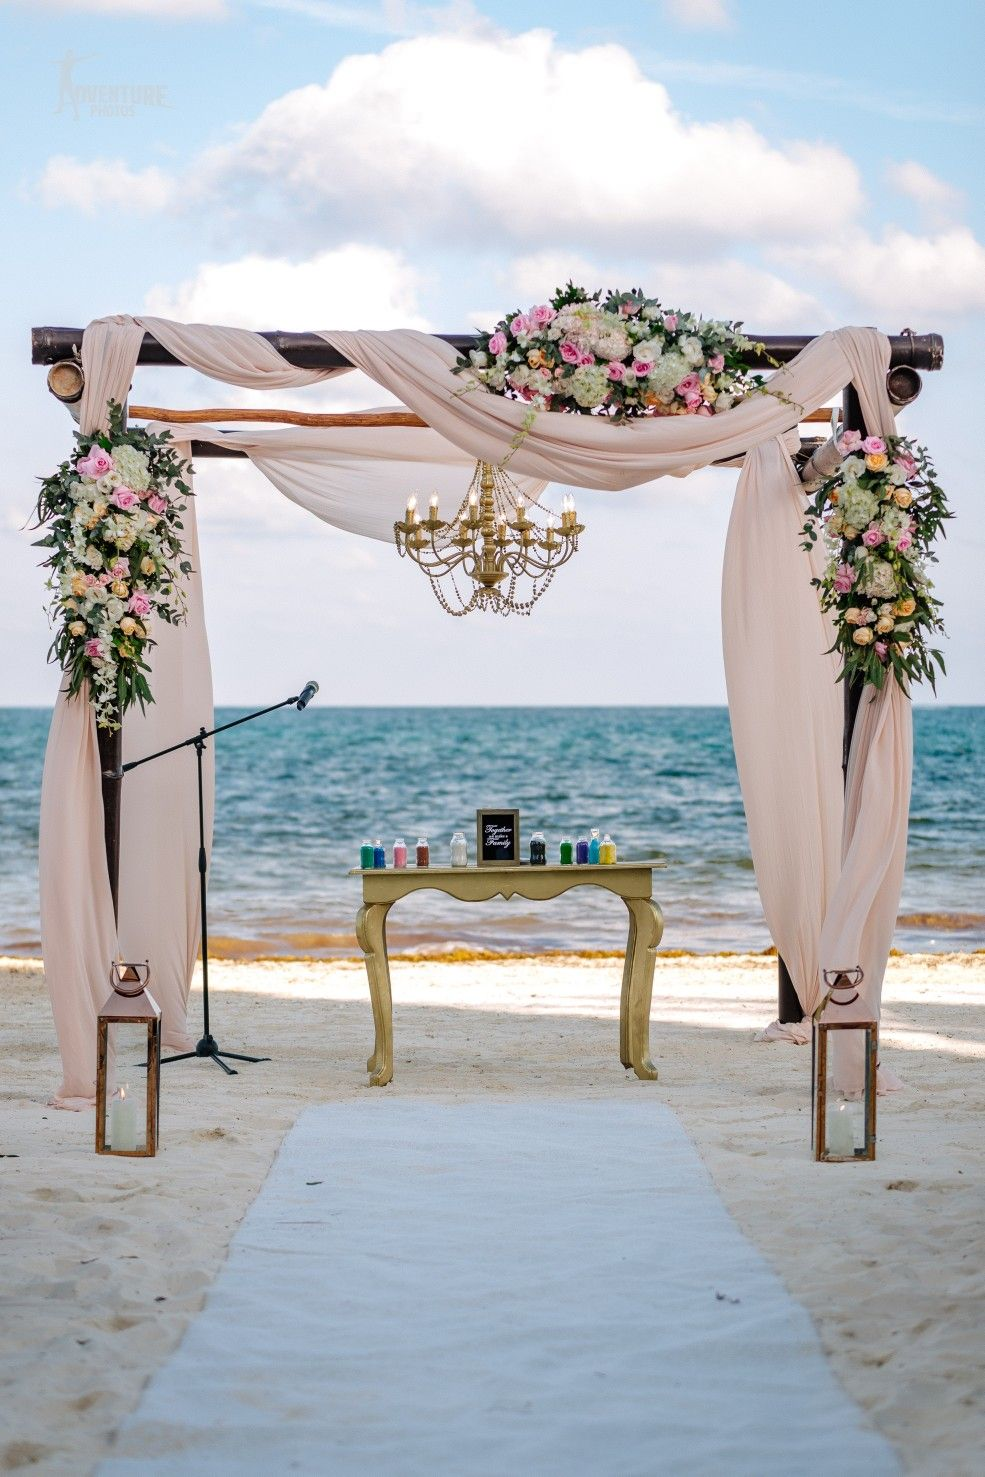 Pinterest Cutipieanu With Images Beach Wedding Aisles